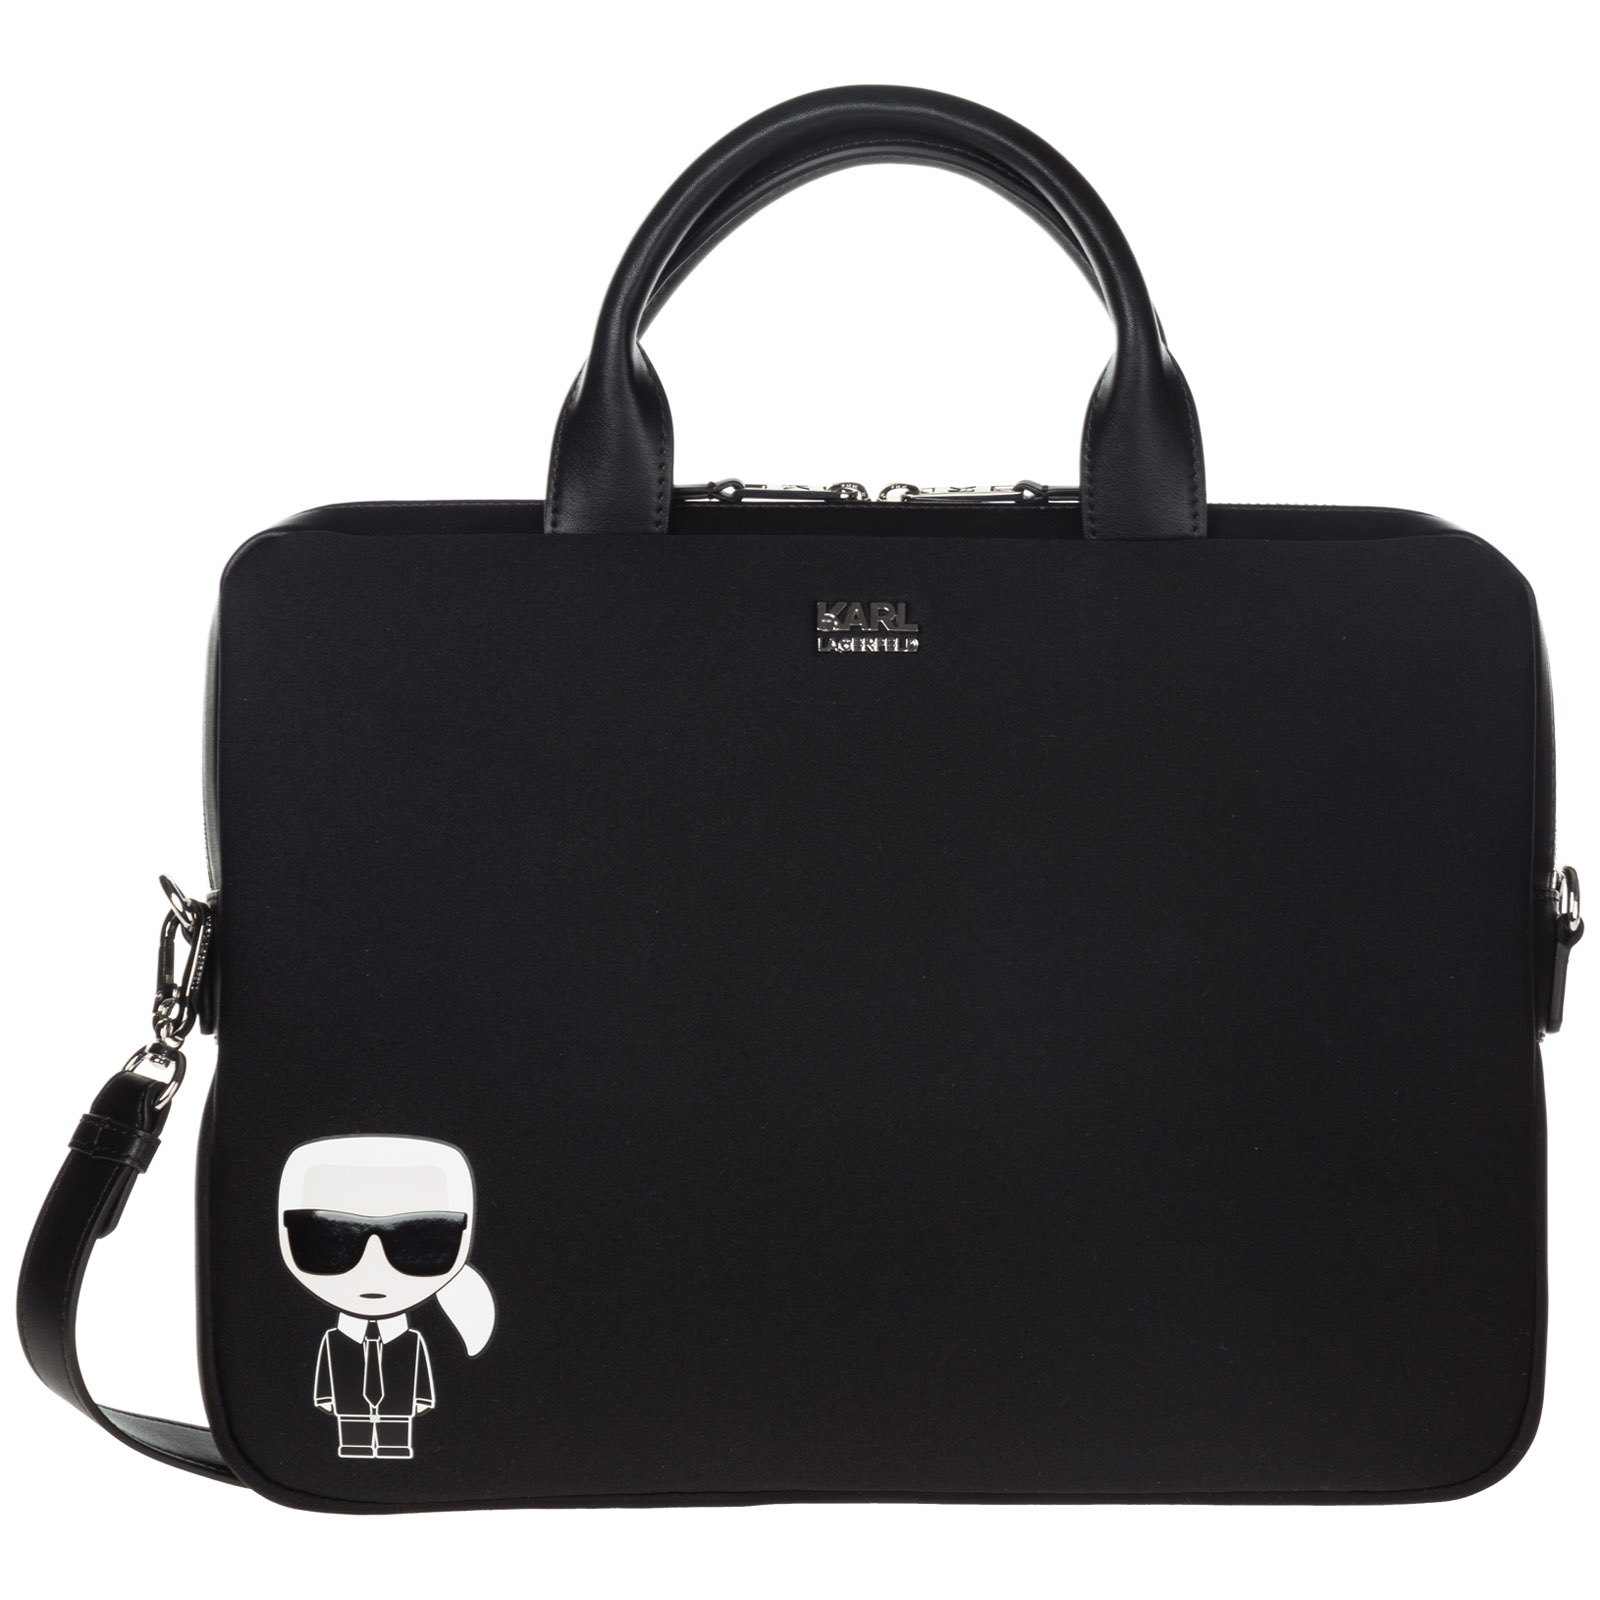 Briefcase attaché case laptop pc bag k/ikonik